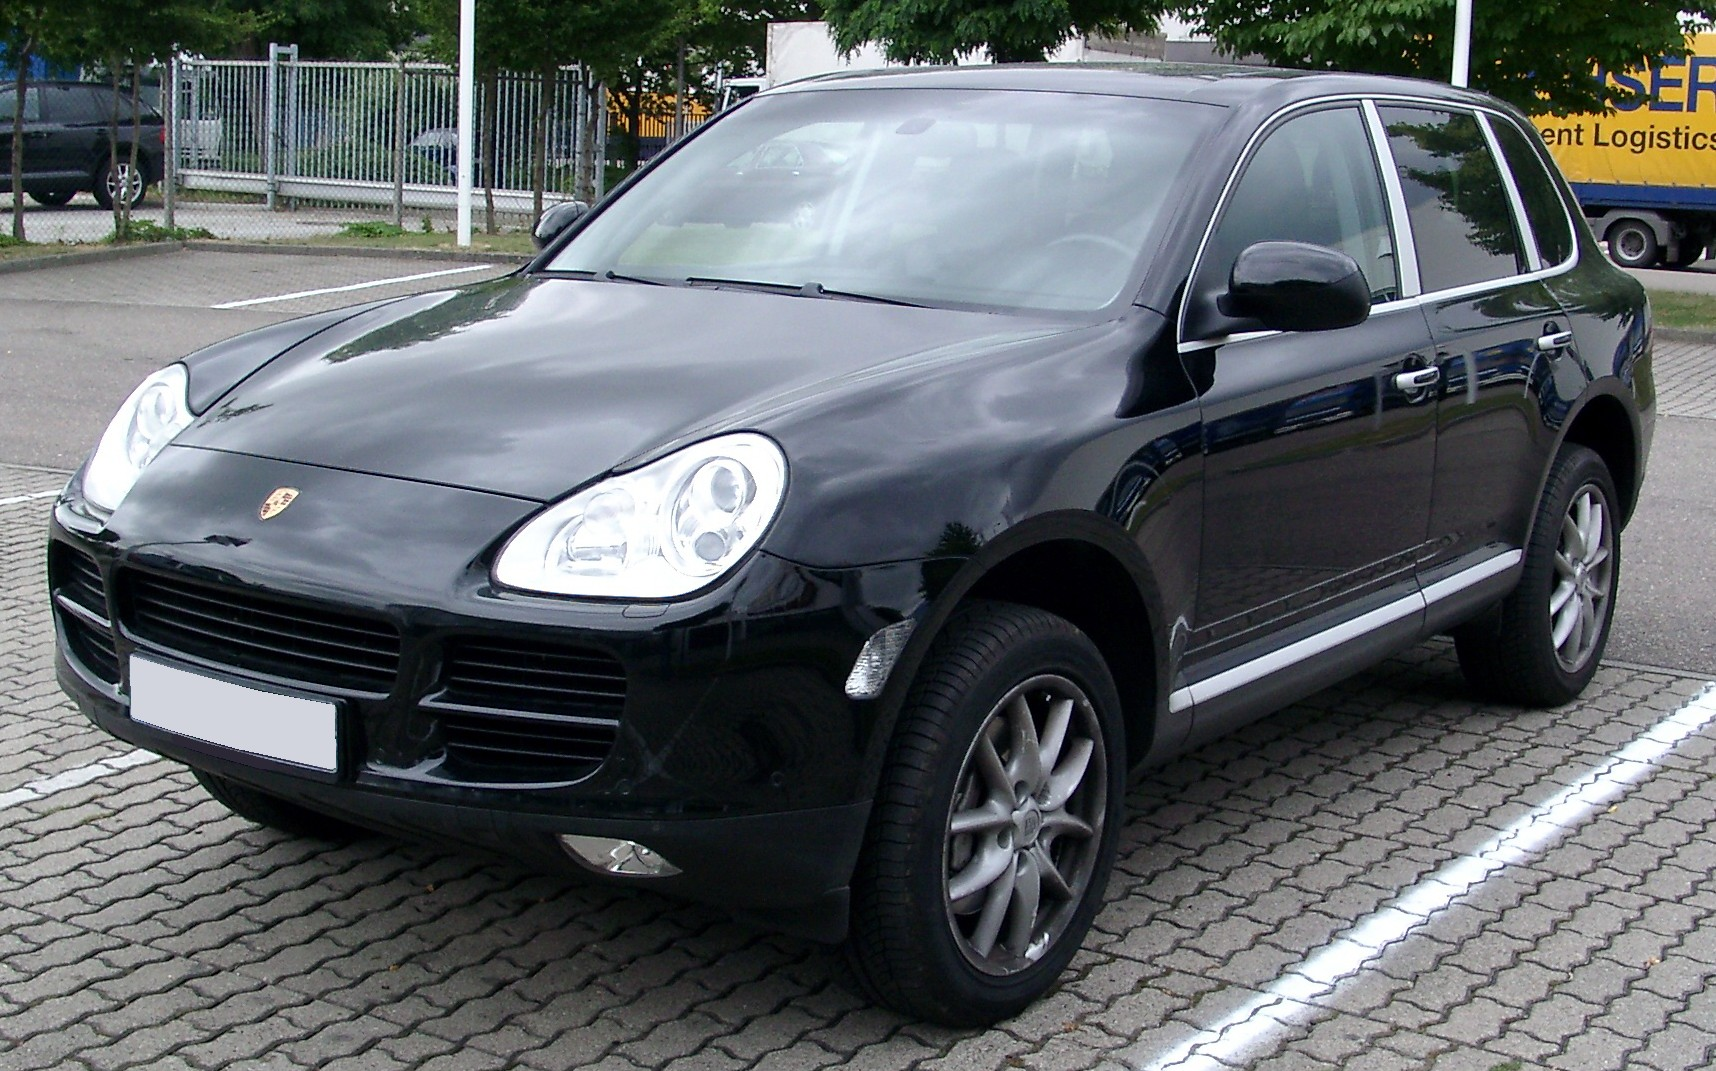 file porsche cayenne s front wikimedia commons. Black Bedroom Furniture Sets. Home Design Ideas